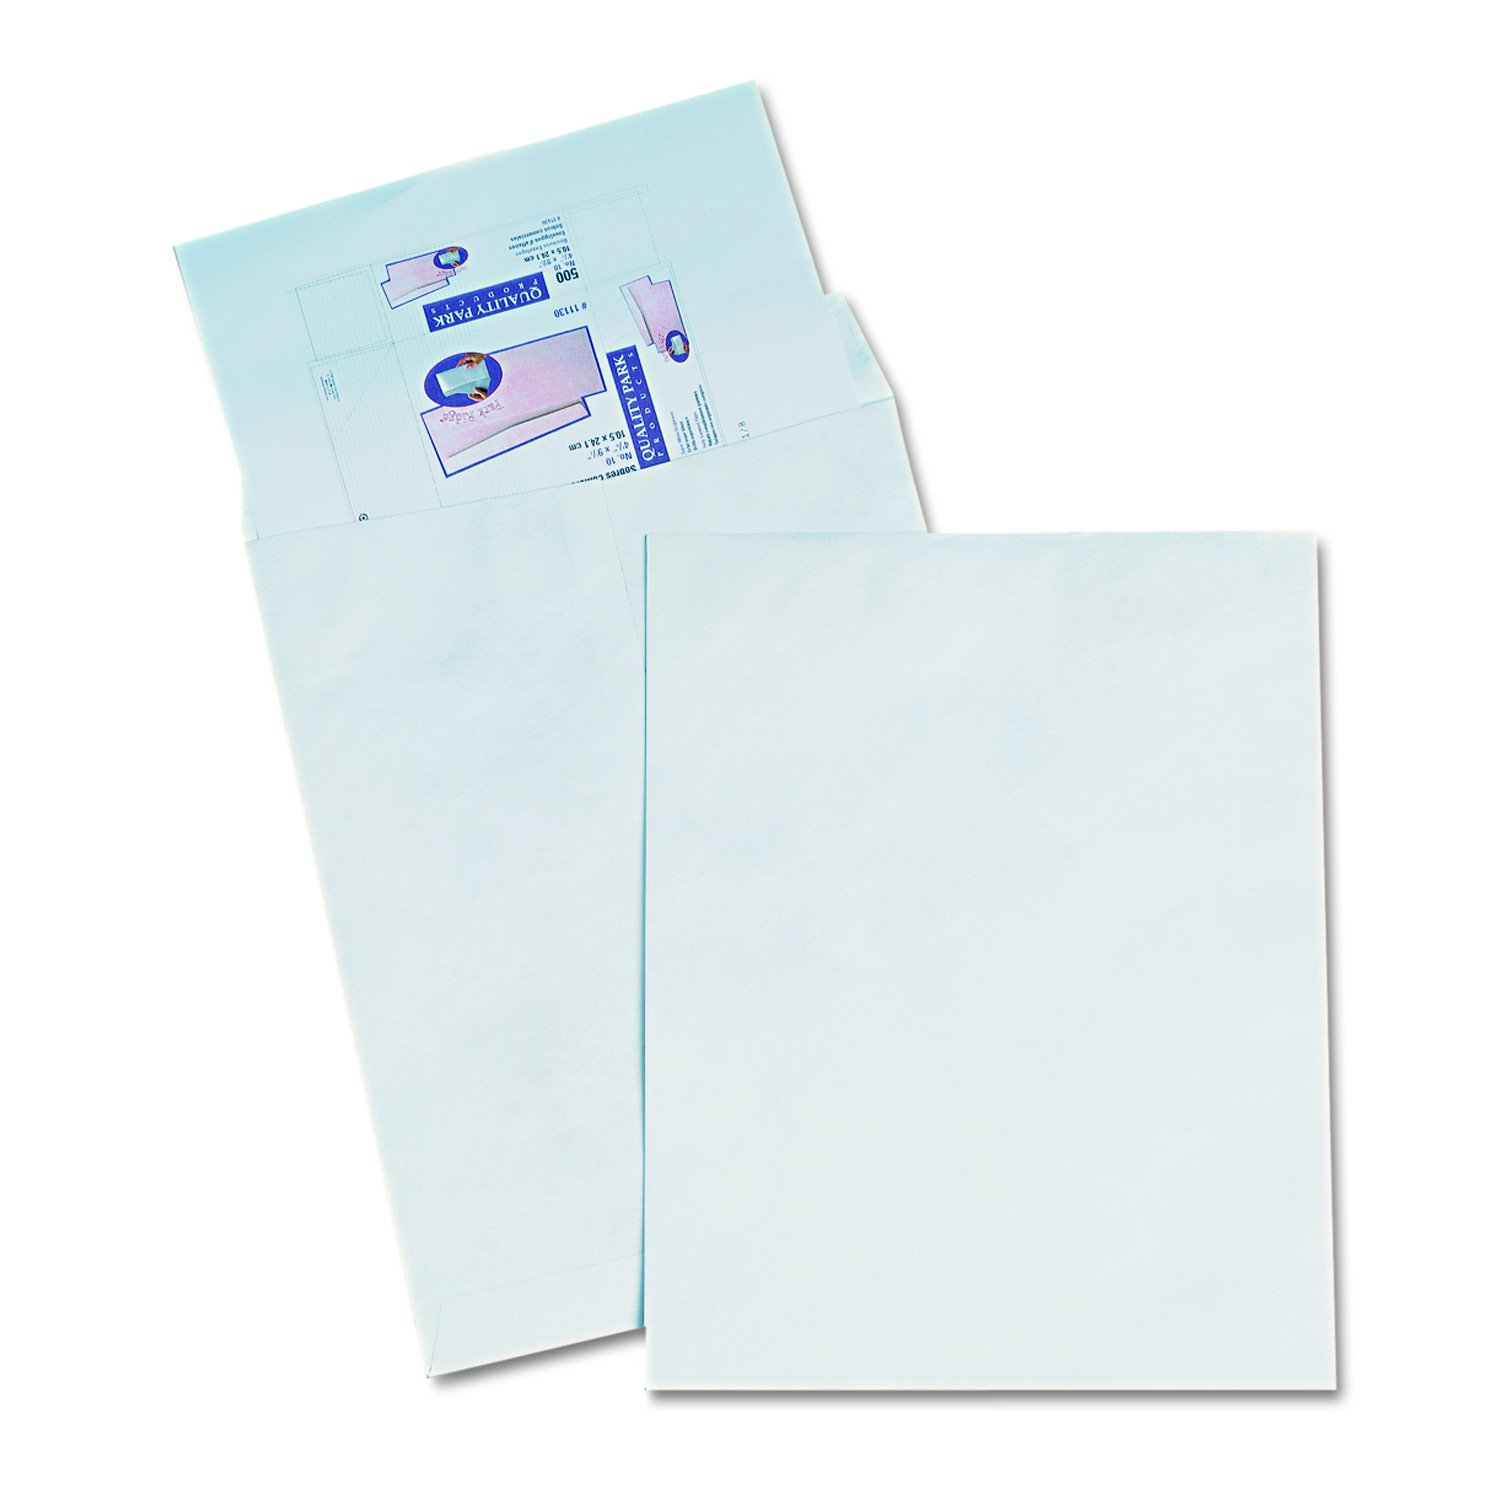 Survivor R5110 Tyvek Jumbo Mailer, 15 x 20, White (Box of 25)